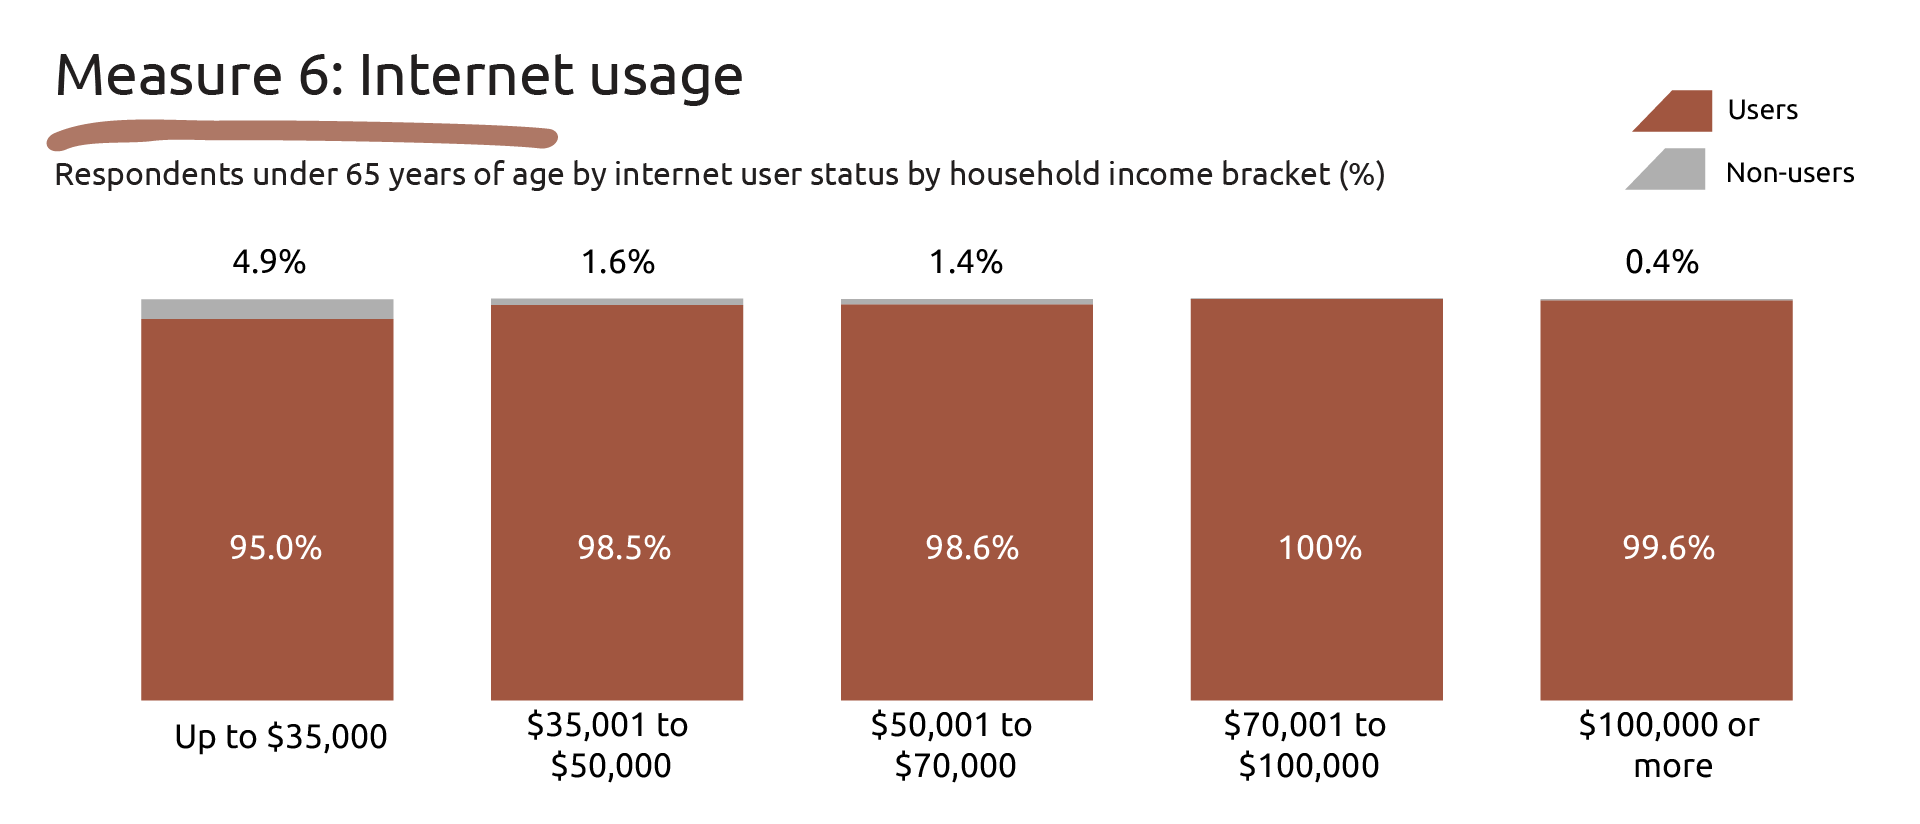 Image showing the data for Measure 6: Internet usage.